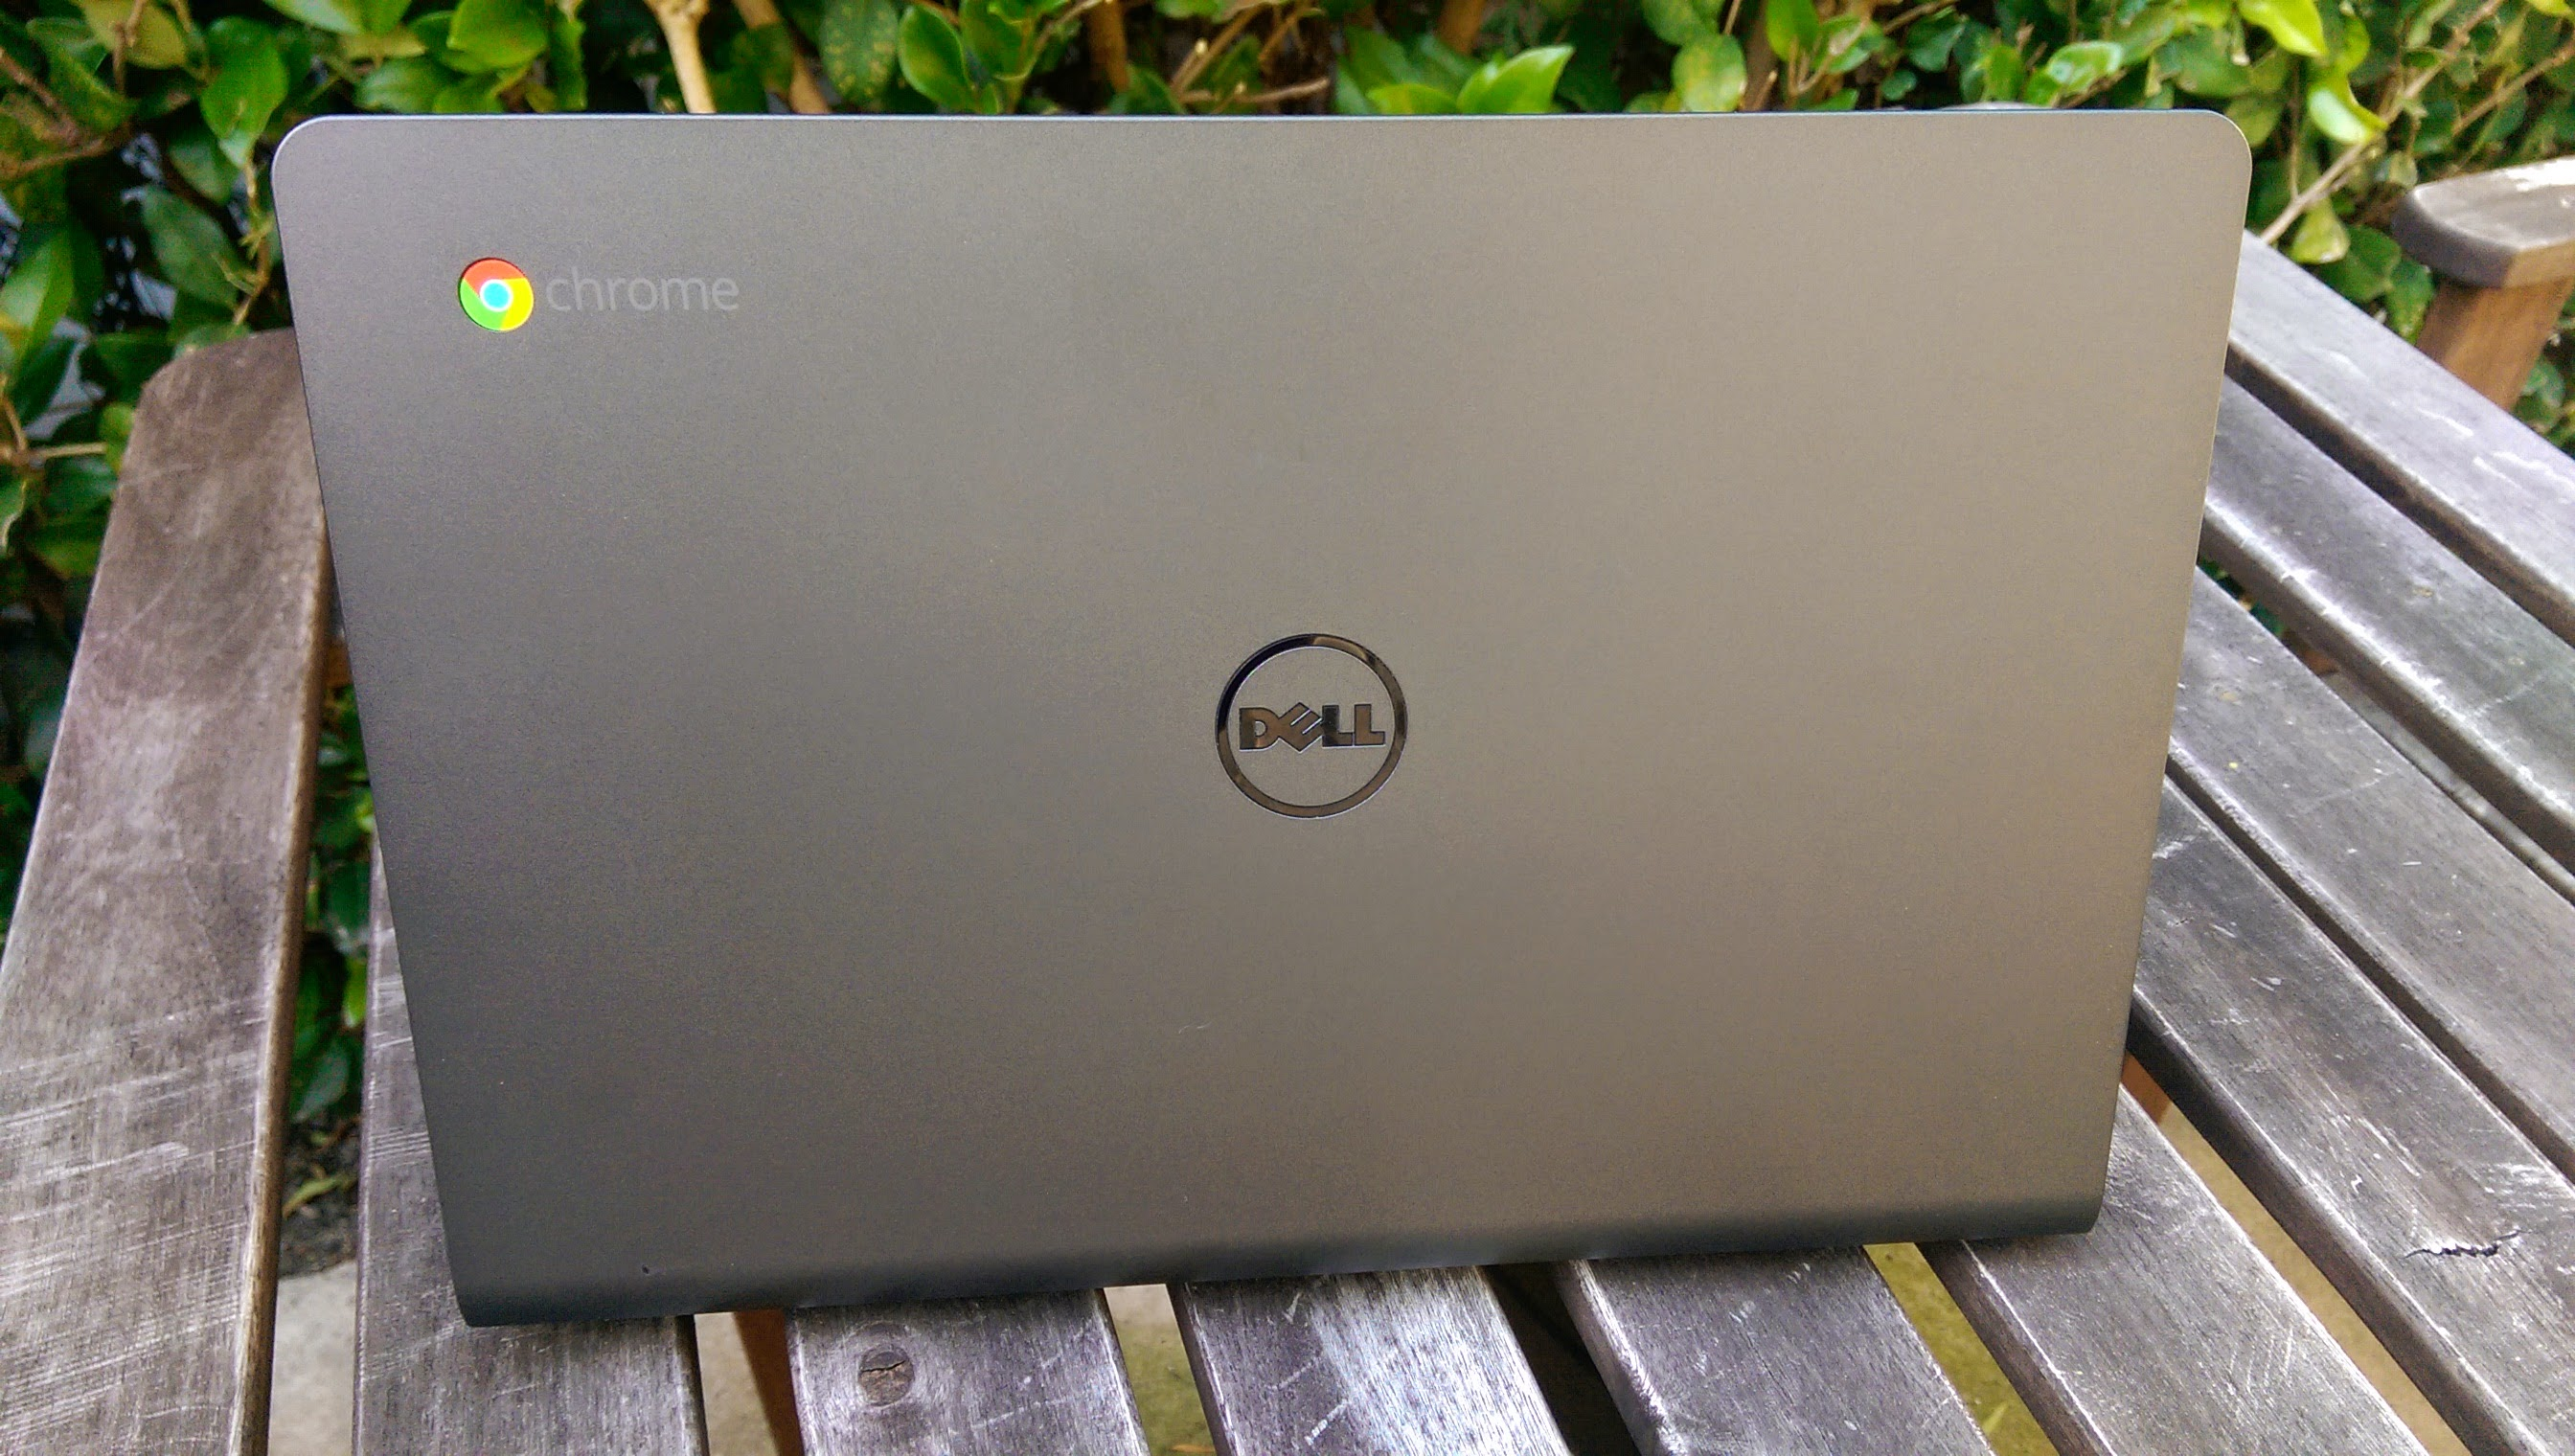 Dell Chromebook 11 review | BetaNews